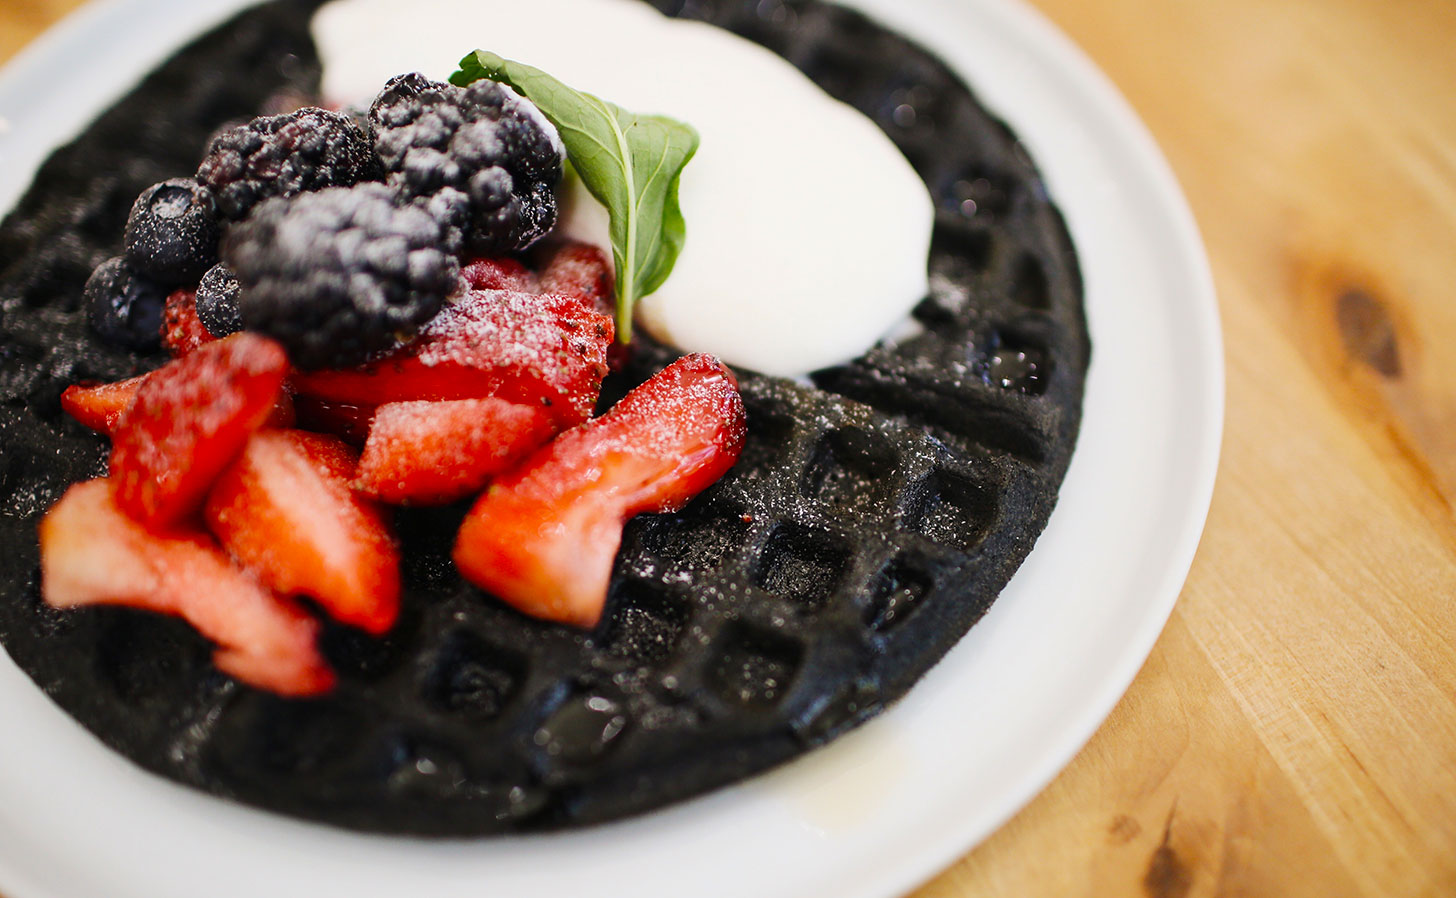 Black Waffle. Photo: Fallon Michael / Unsplash